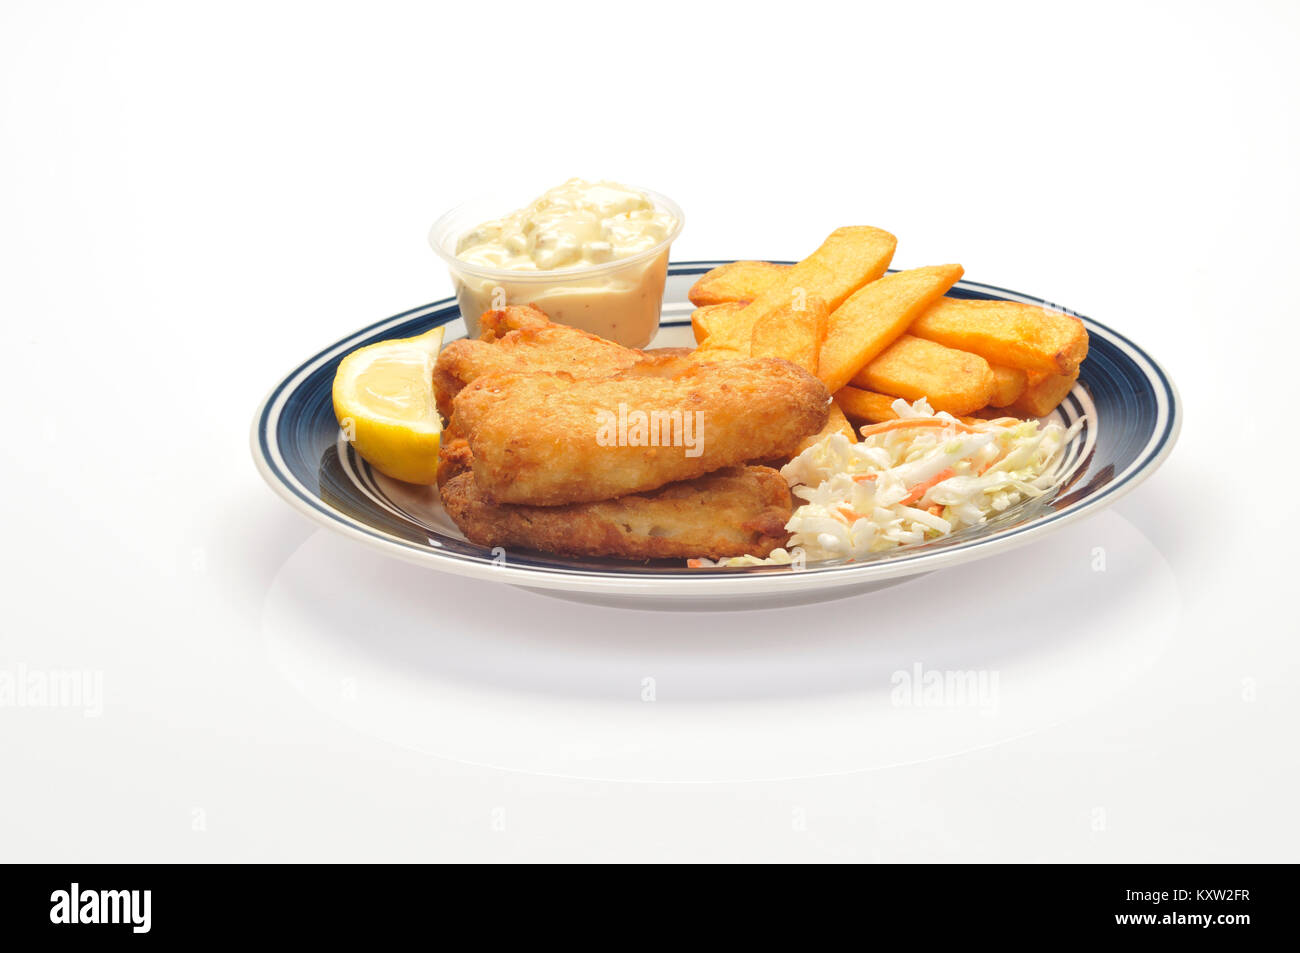 Fried fish and chips with a wedge of lemon, coleslaw and tartar sauce on blue and white plate on white background Stock Photo